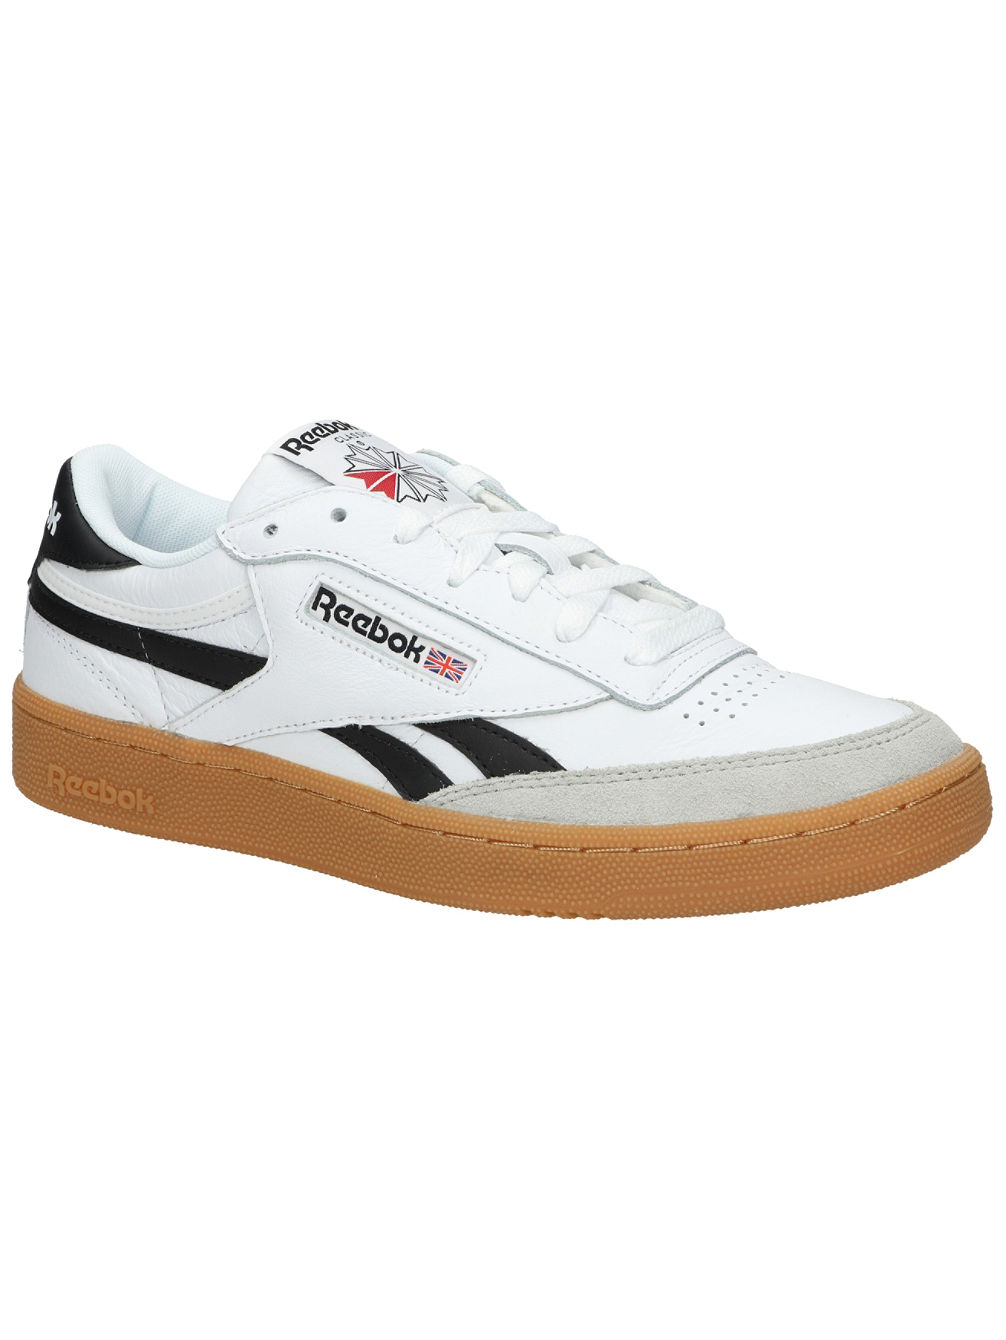 88a6265fdc5 Buy Reebok Revenge Plus Gum Sneakers online at Blue Tomato